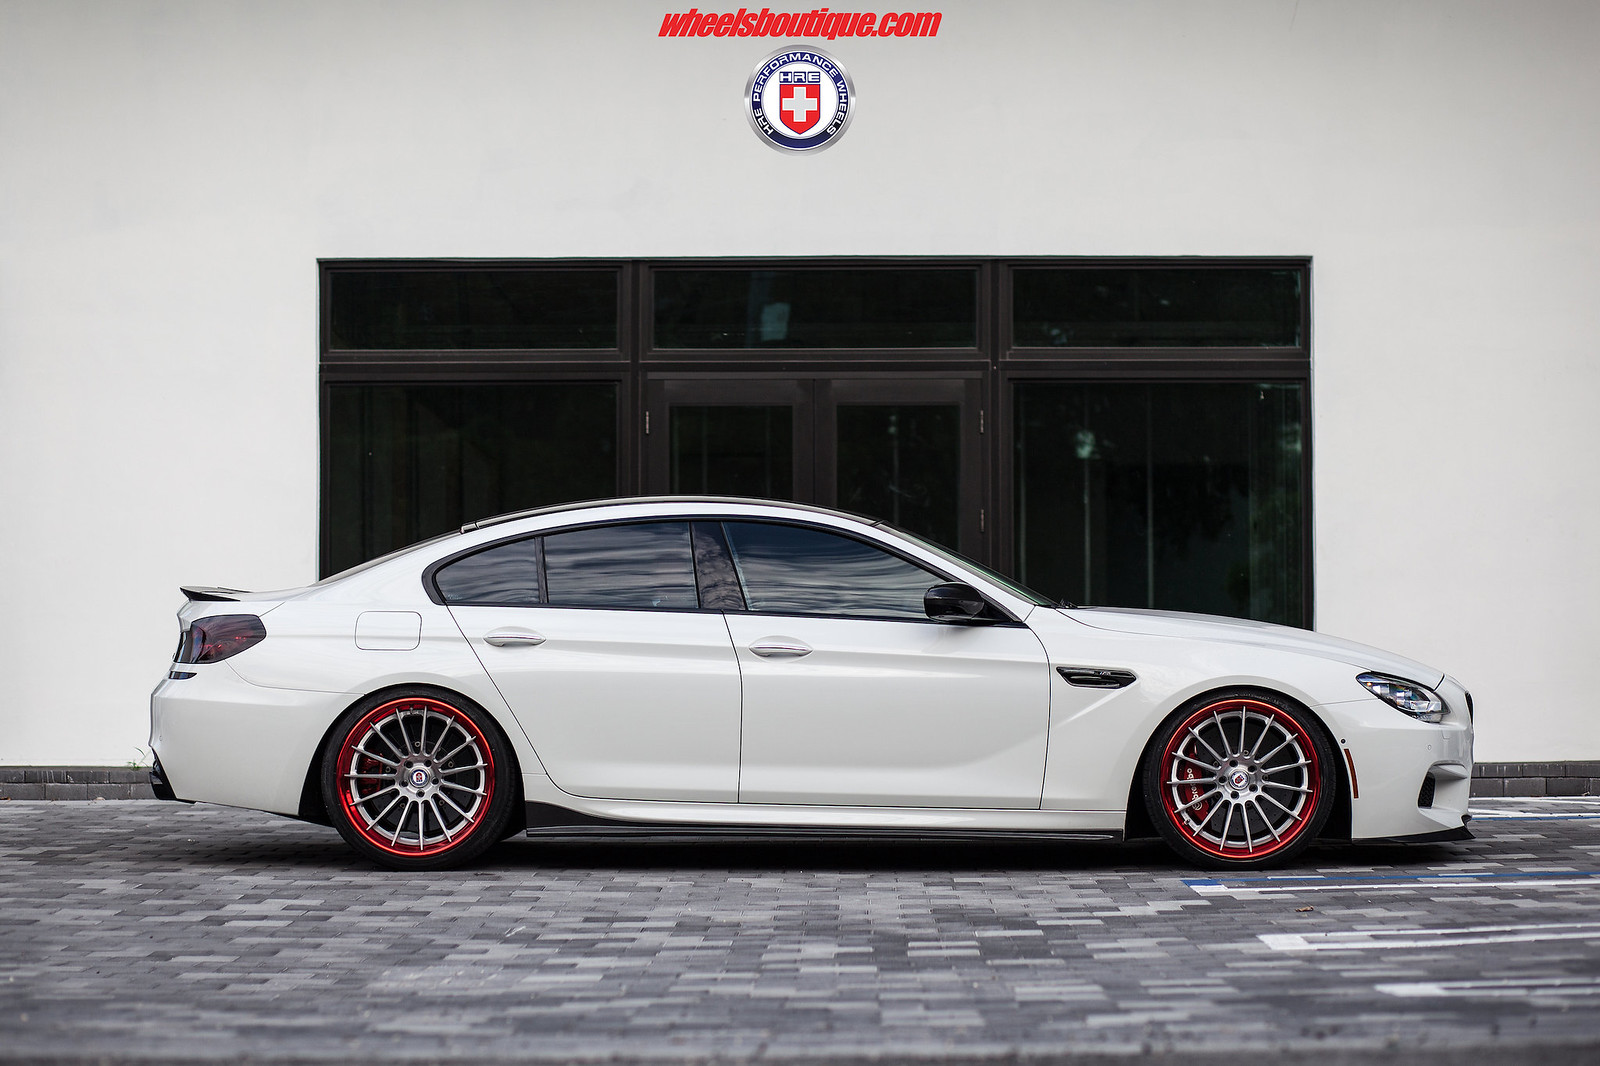 Wheels Boutique Bmw M6 Gran Coupe X Hre Rs103 Mbworld Org Forums